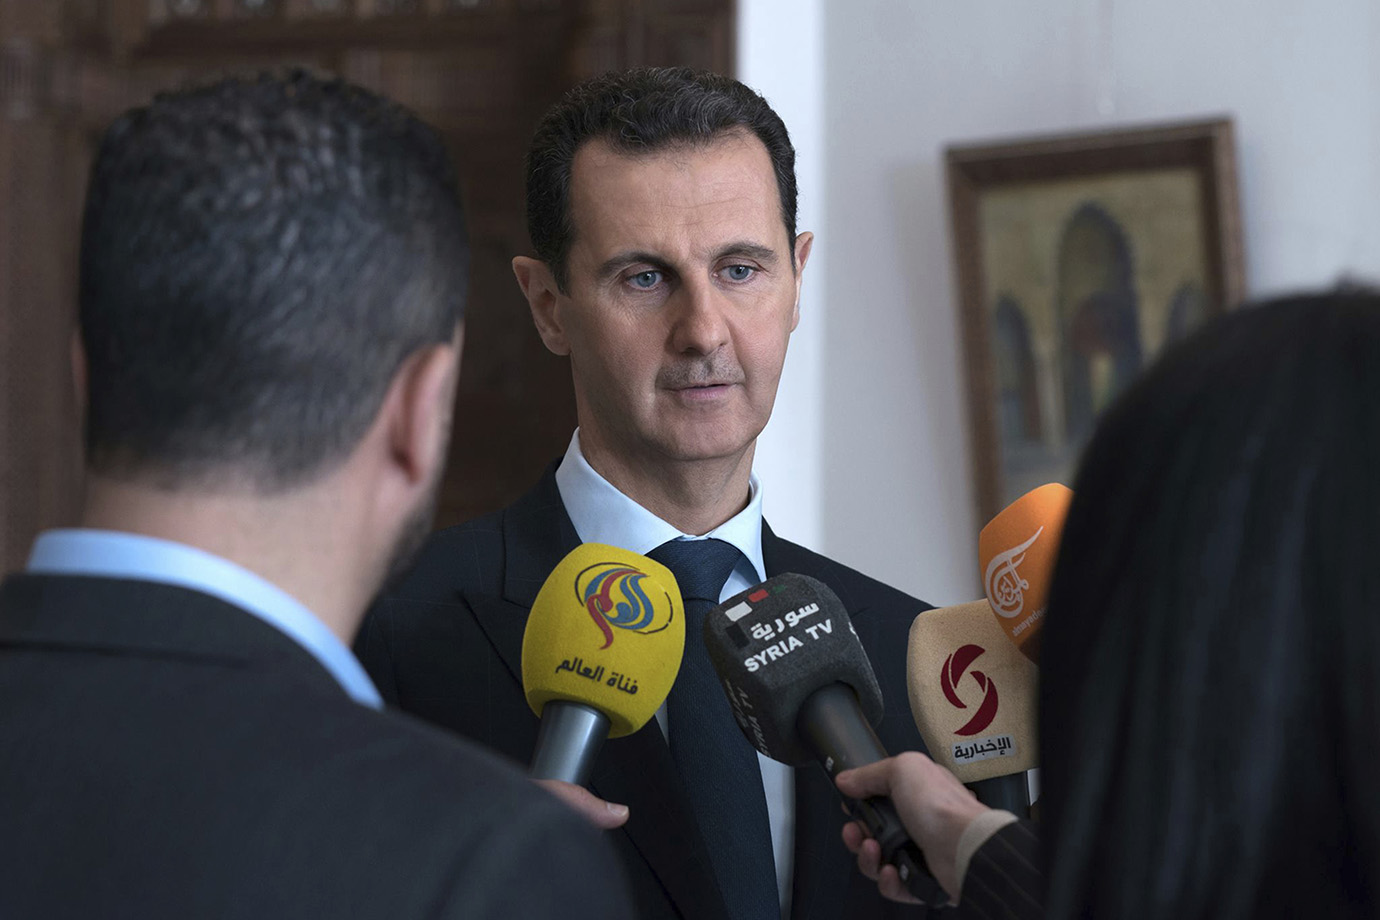 Syrian President Bashar Al Assad speaks with reporters, in Damascus, Syria, Sunday, March 4, 2018.